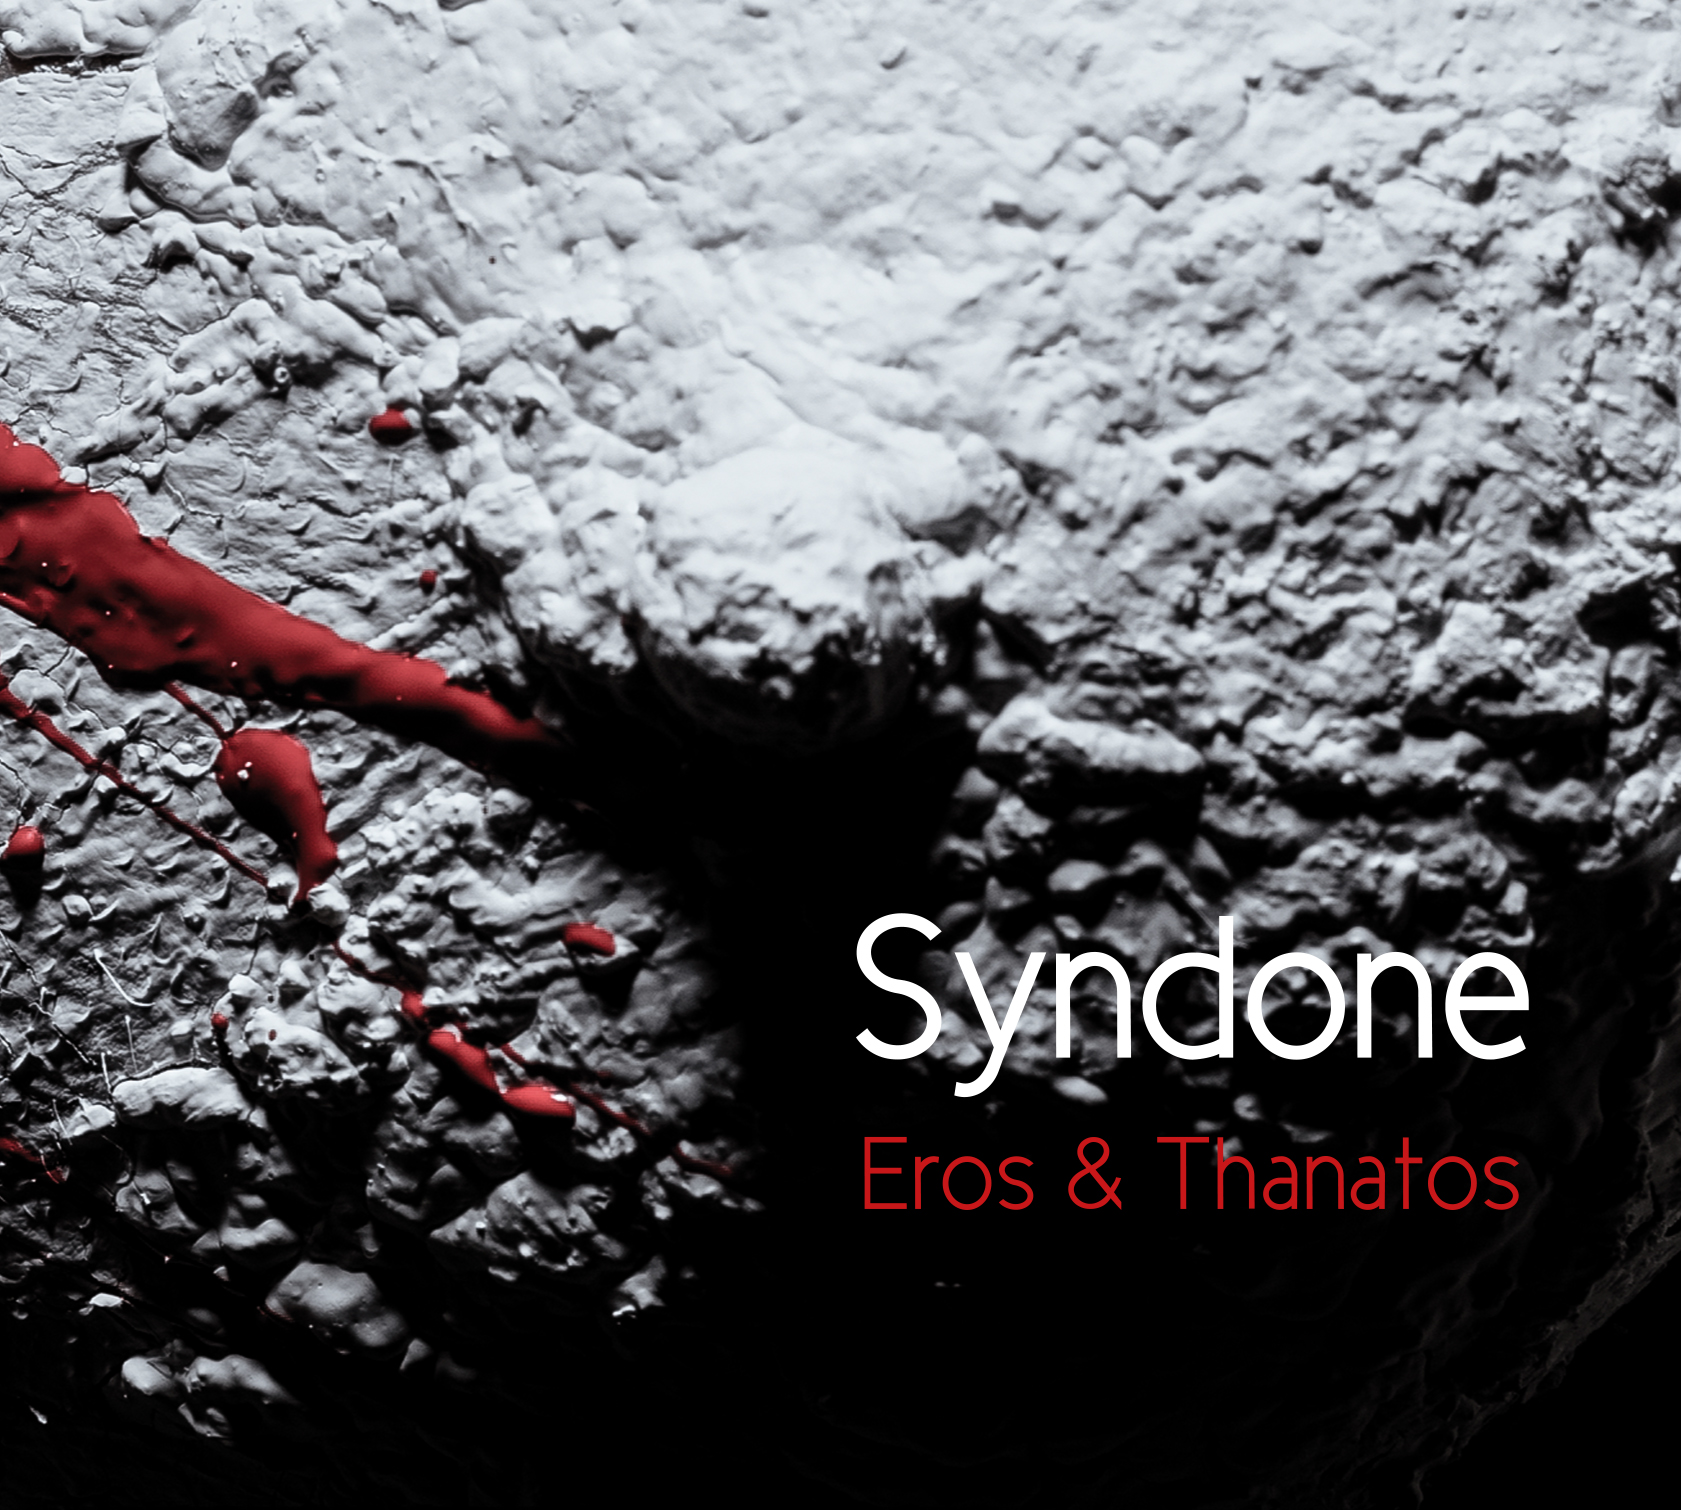 SYNDONE - Eros & Thanatos CD Digipack